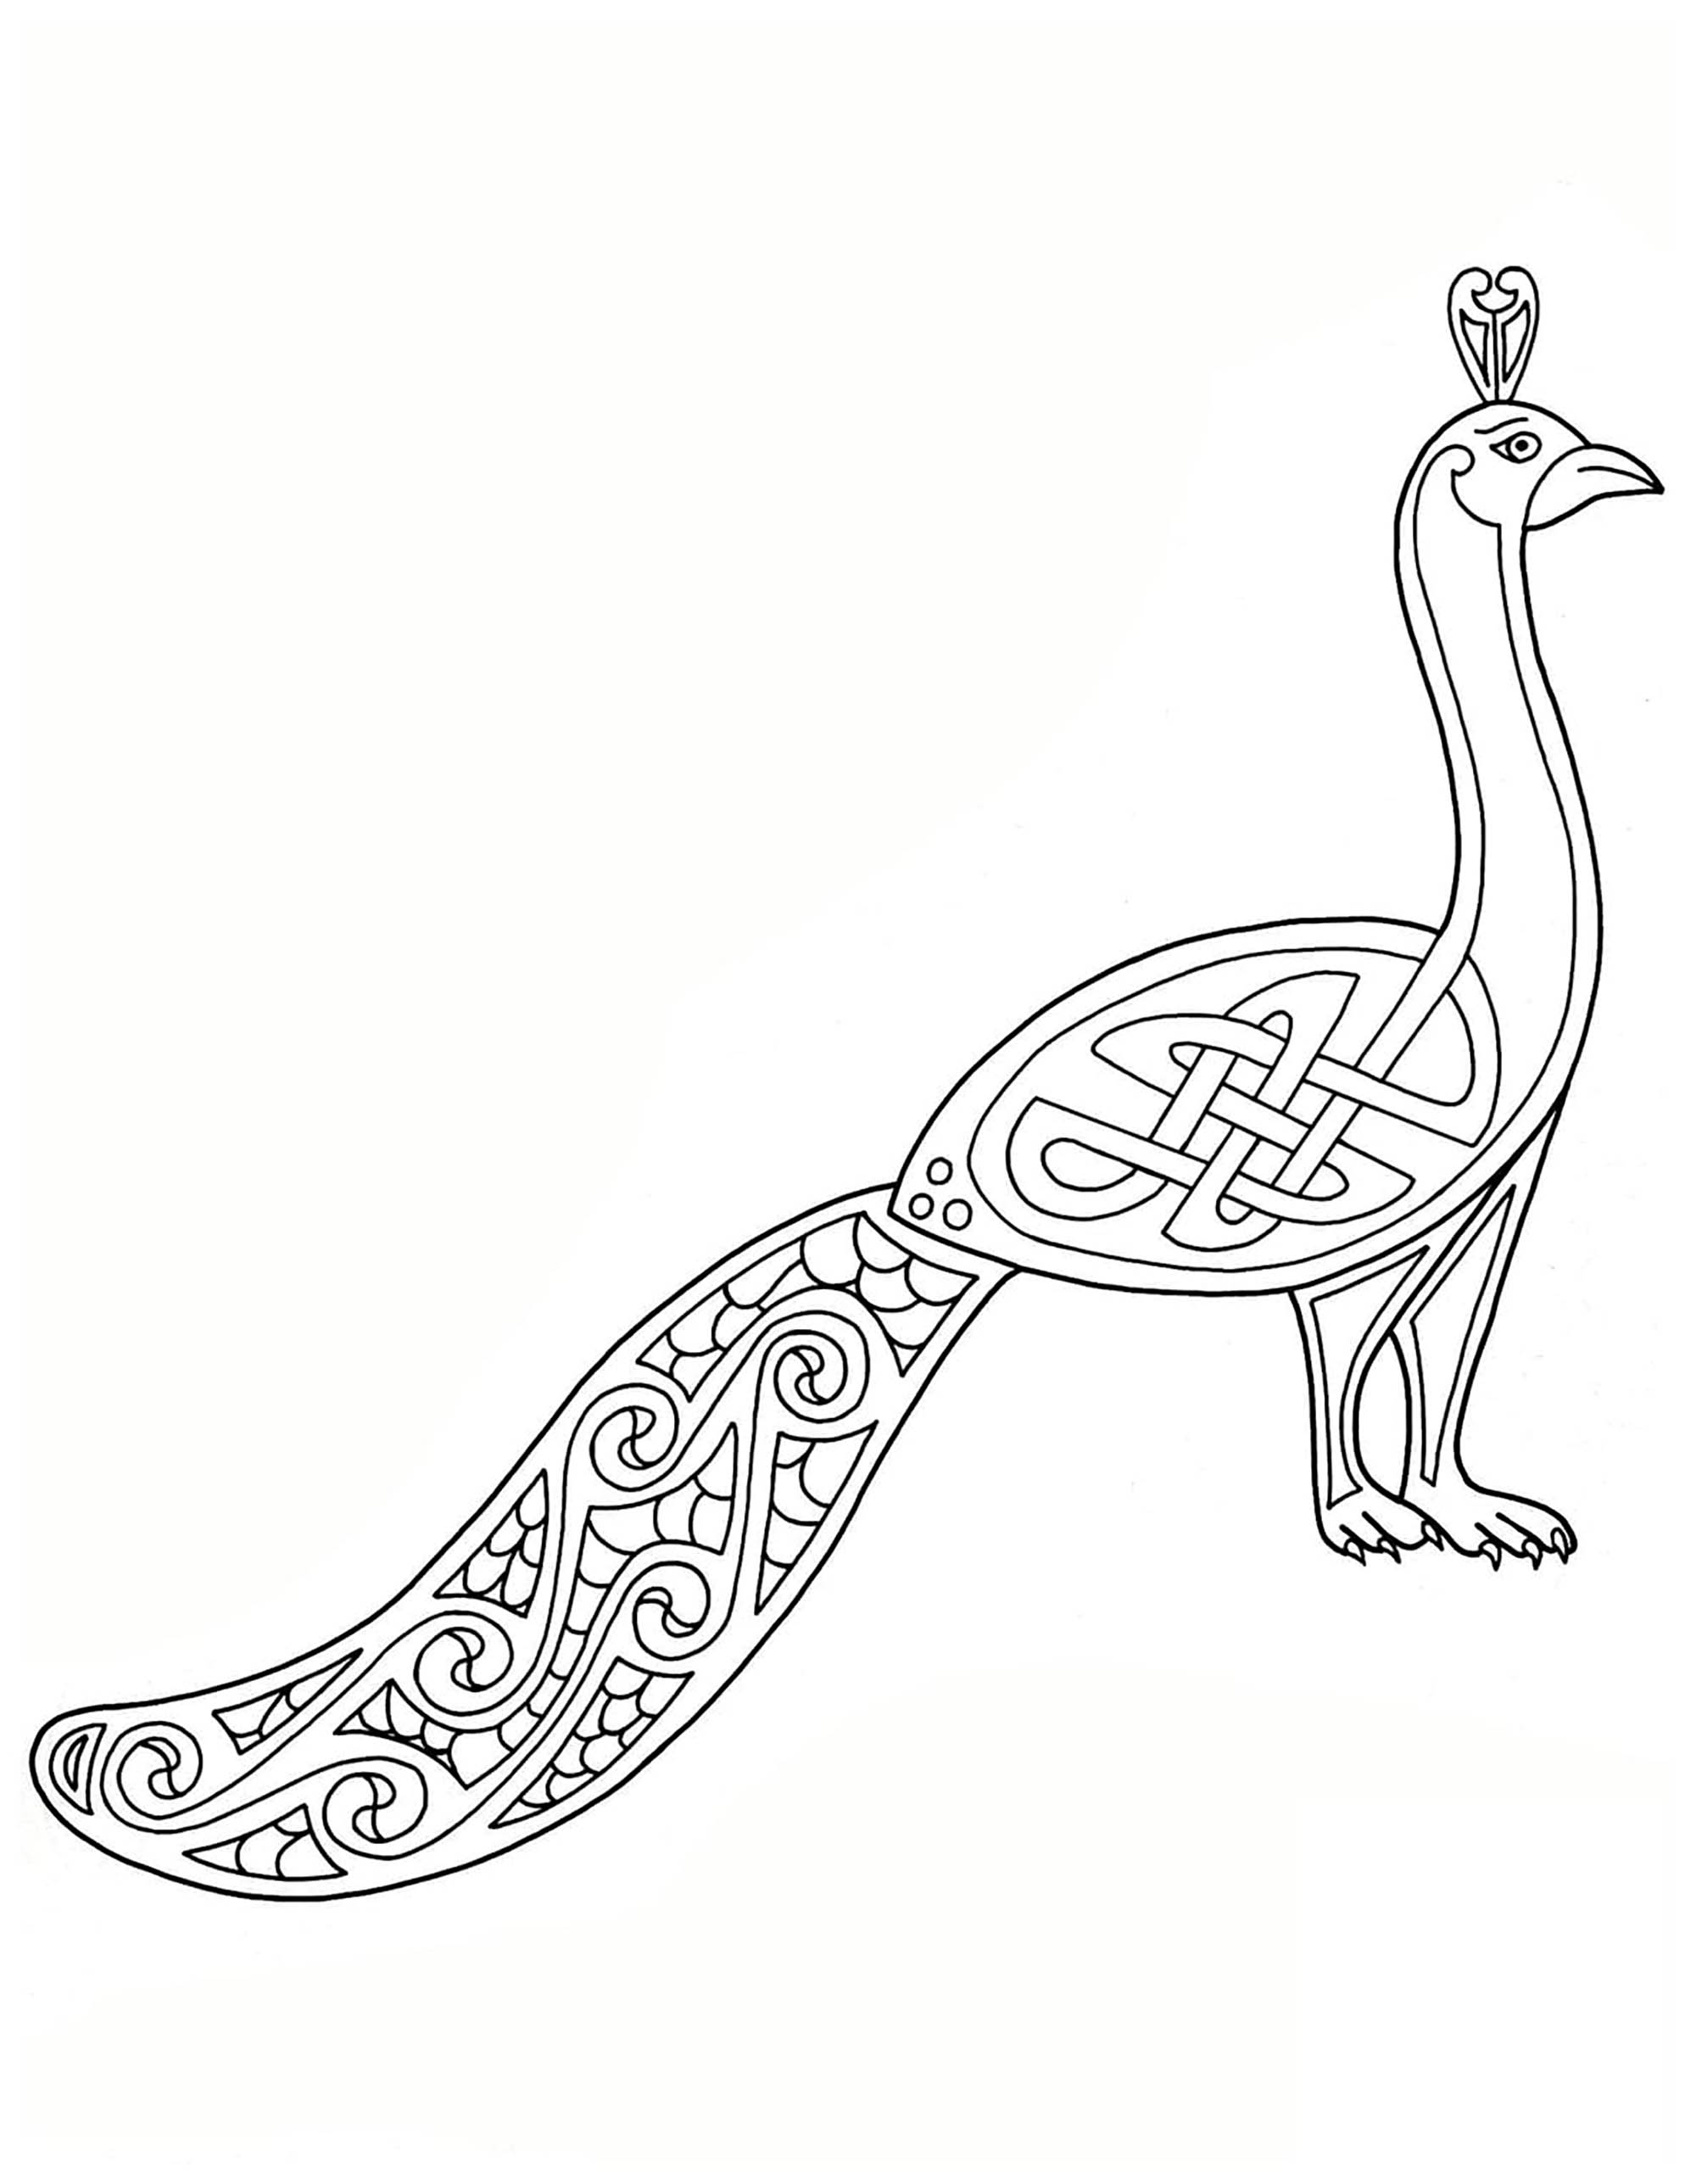 Peacock, drawn with Celtic Art style